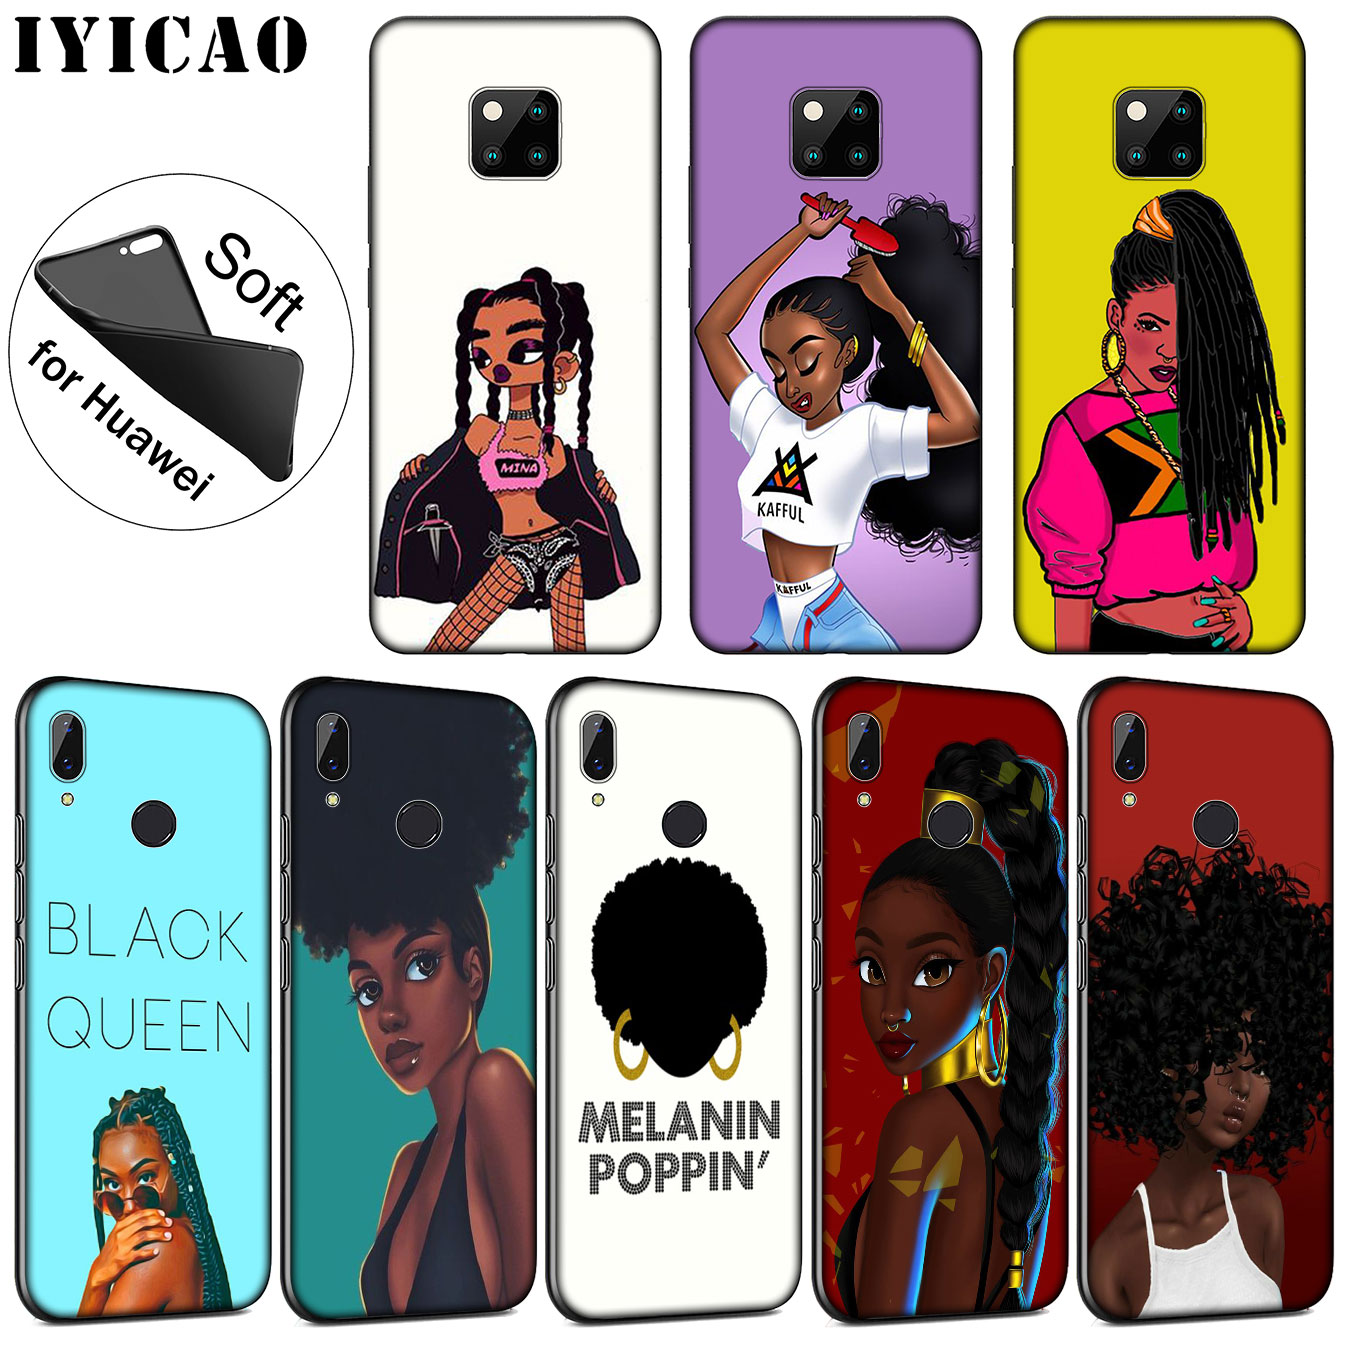 Methodical Iyicao New Personalized Melanin Poppin Black Girl Soft Silicone Case For Huawei Nova 3i 3 2i For Huawei Mate 20 10 Pro Lite Cellphones & Telecommunications Phone Bags & Cases